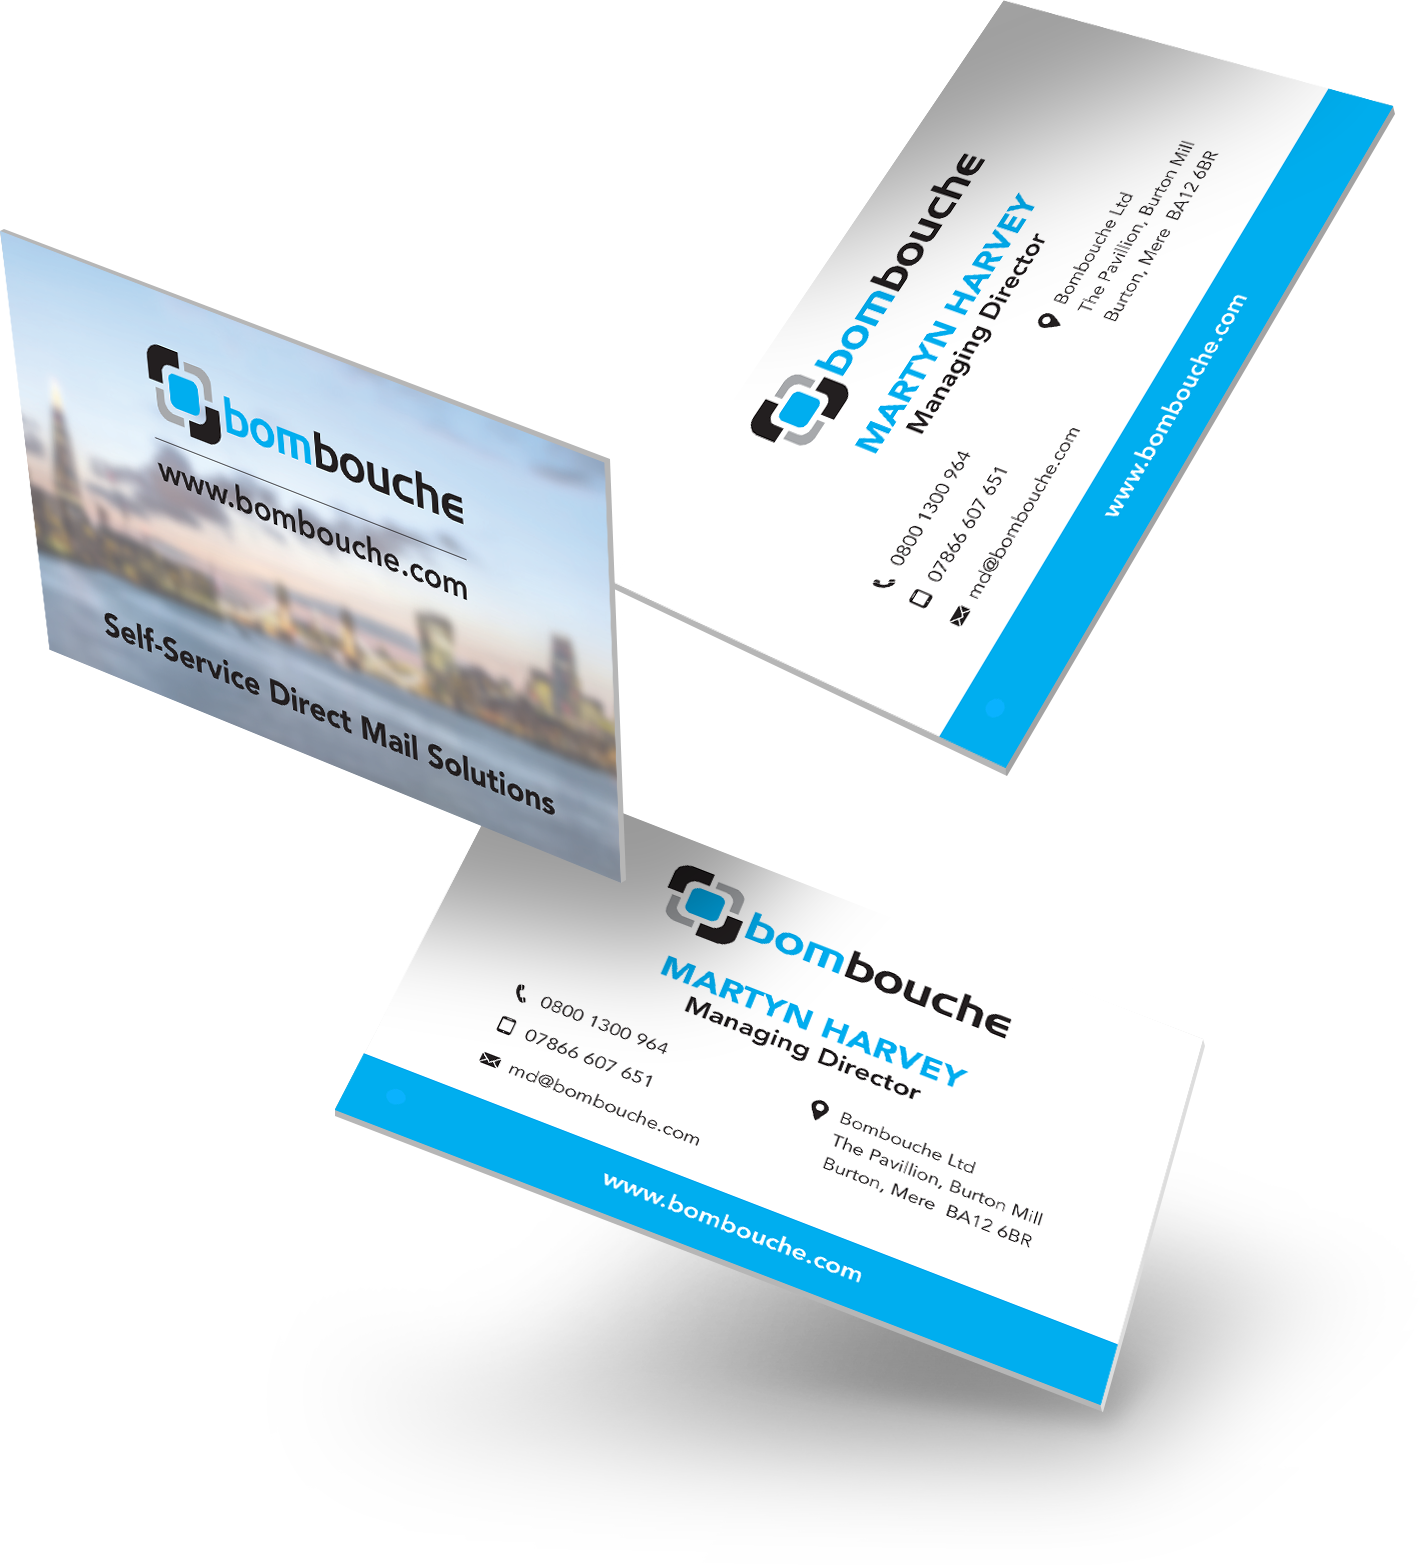 Business Cards | Direct Printing and Mailing from Bombouche.com